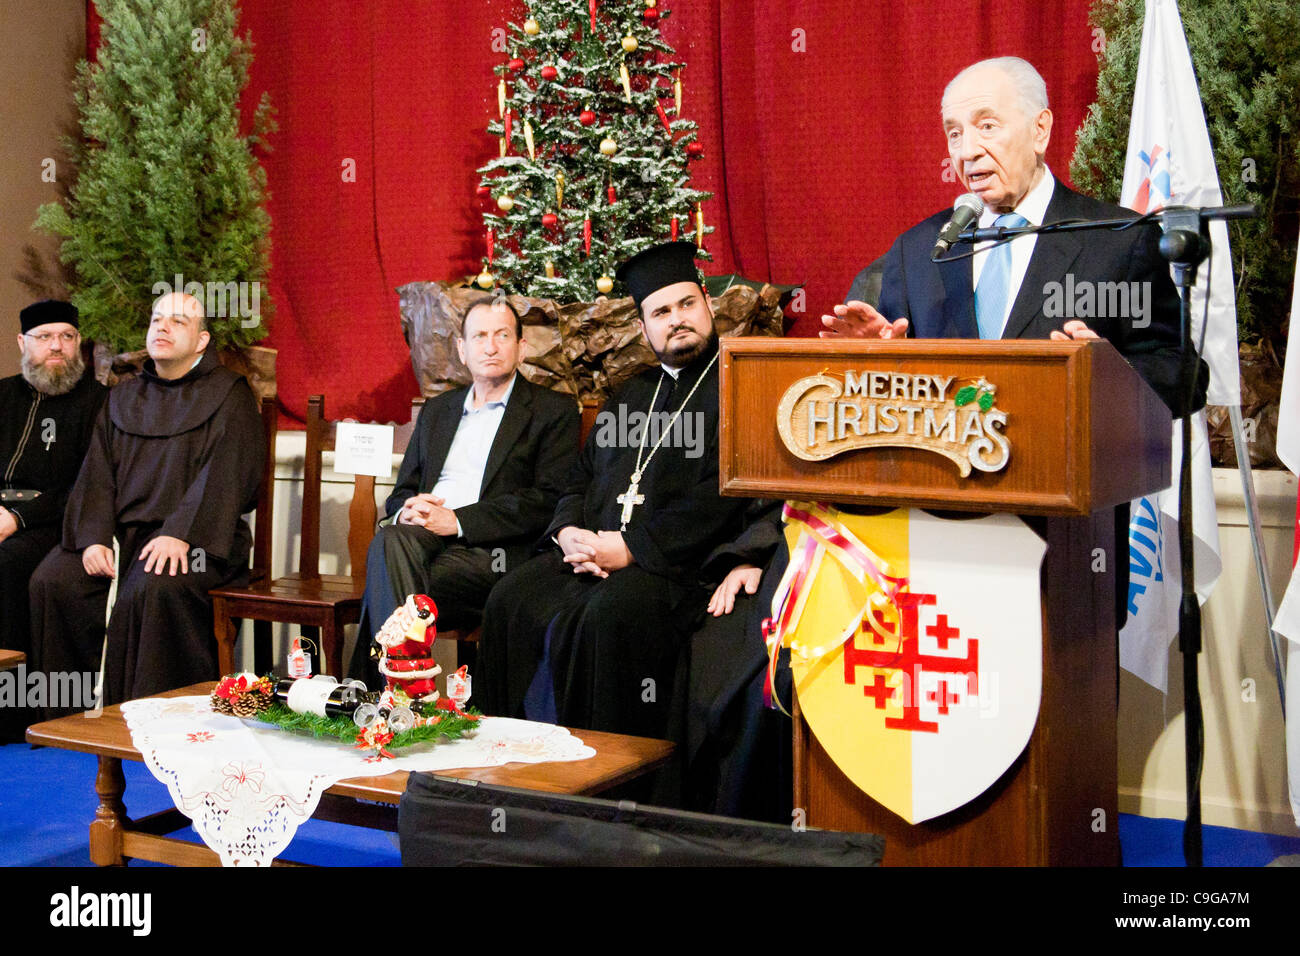 President shimon peres extends holiday greetings to jaffa christian president shimon peres extends holiday greetings to jaffa christian representatives and christian community leaders at st anthonys roman catholic church m4hsunfo